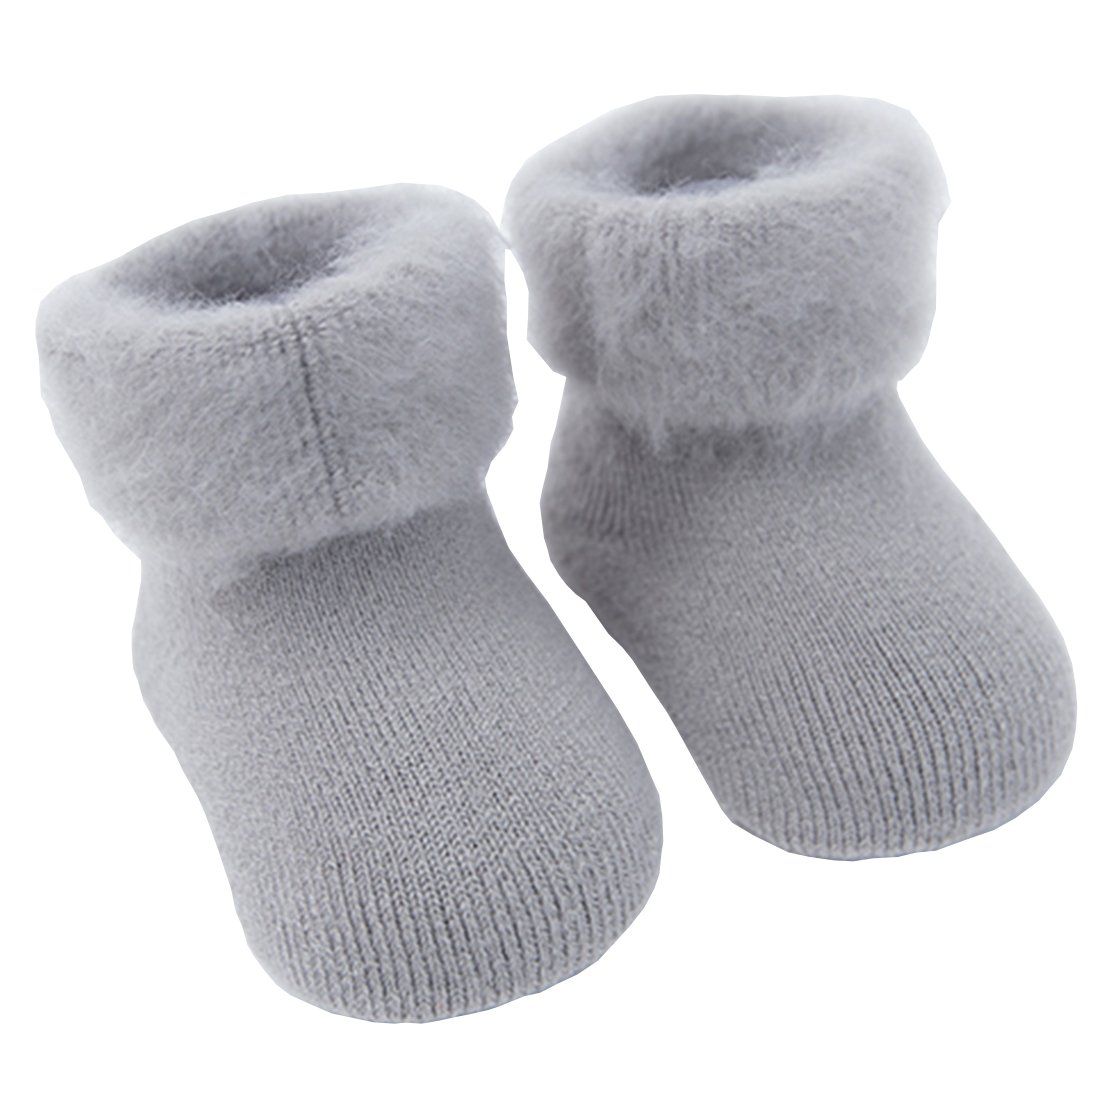 Everstars for baby socks [High-end Soft Material][Delicate Workmanship][Sweat Update][Soft Cotton Fabric] [Fun & Cute] Antibacterial Deodorant socks for babies (Gray, 0~6 month)